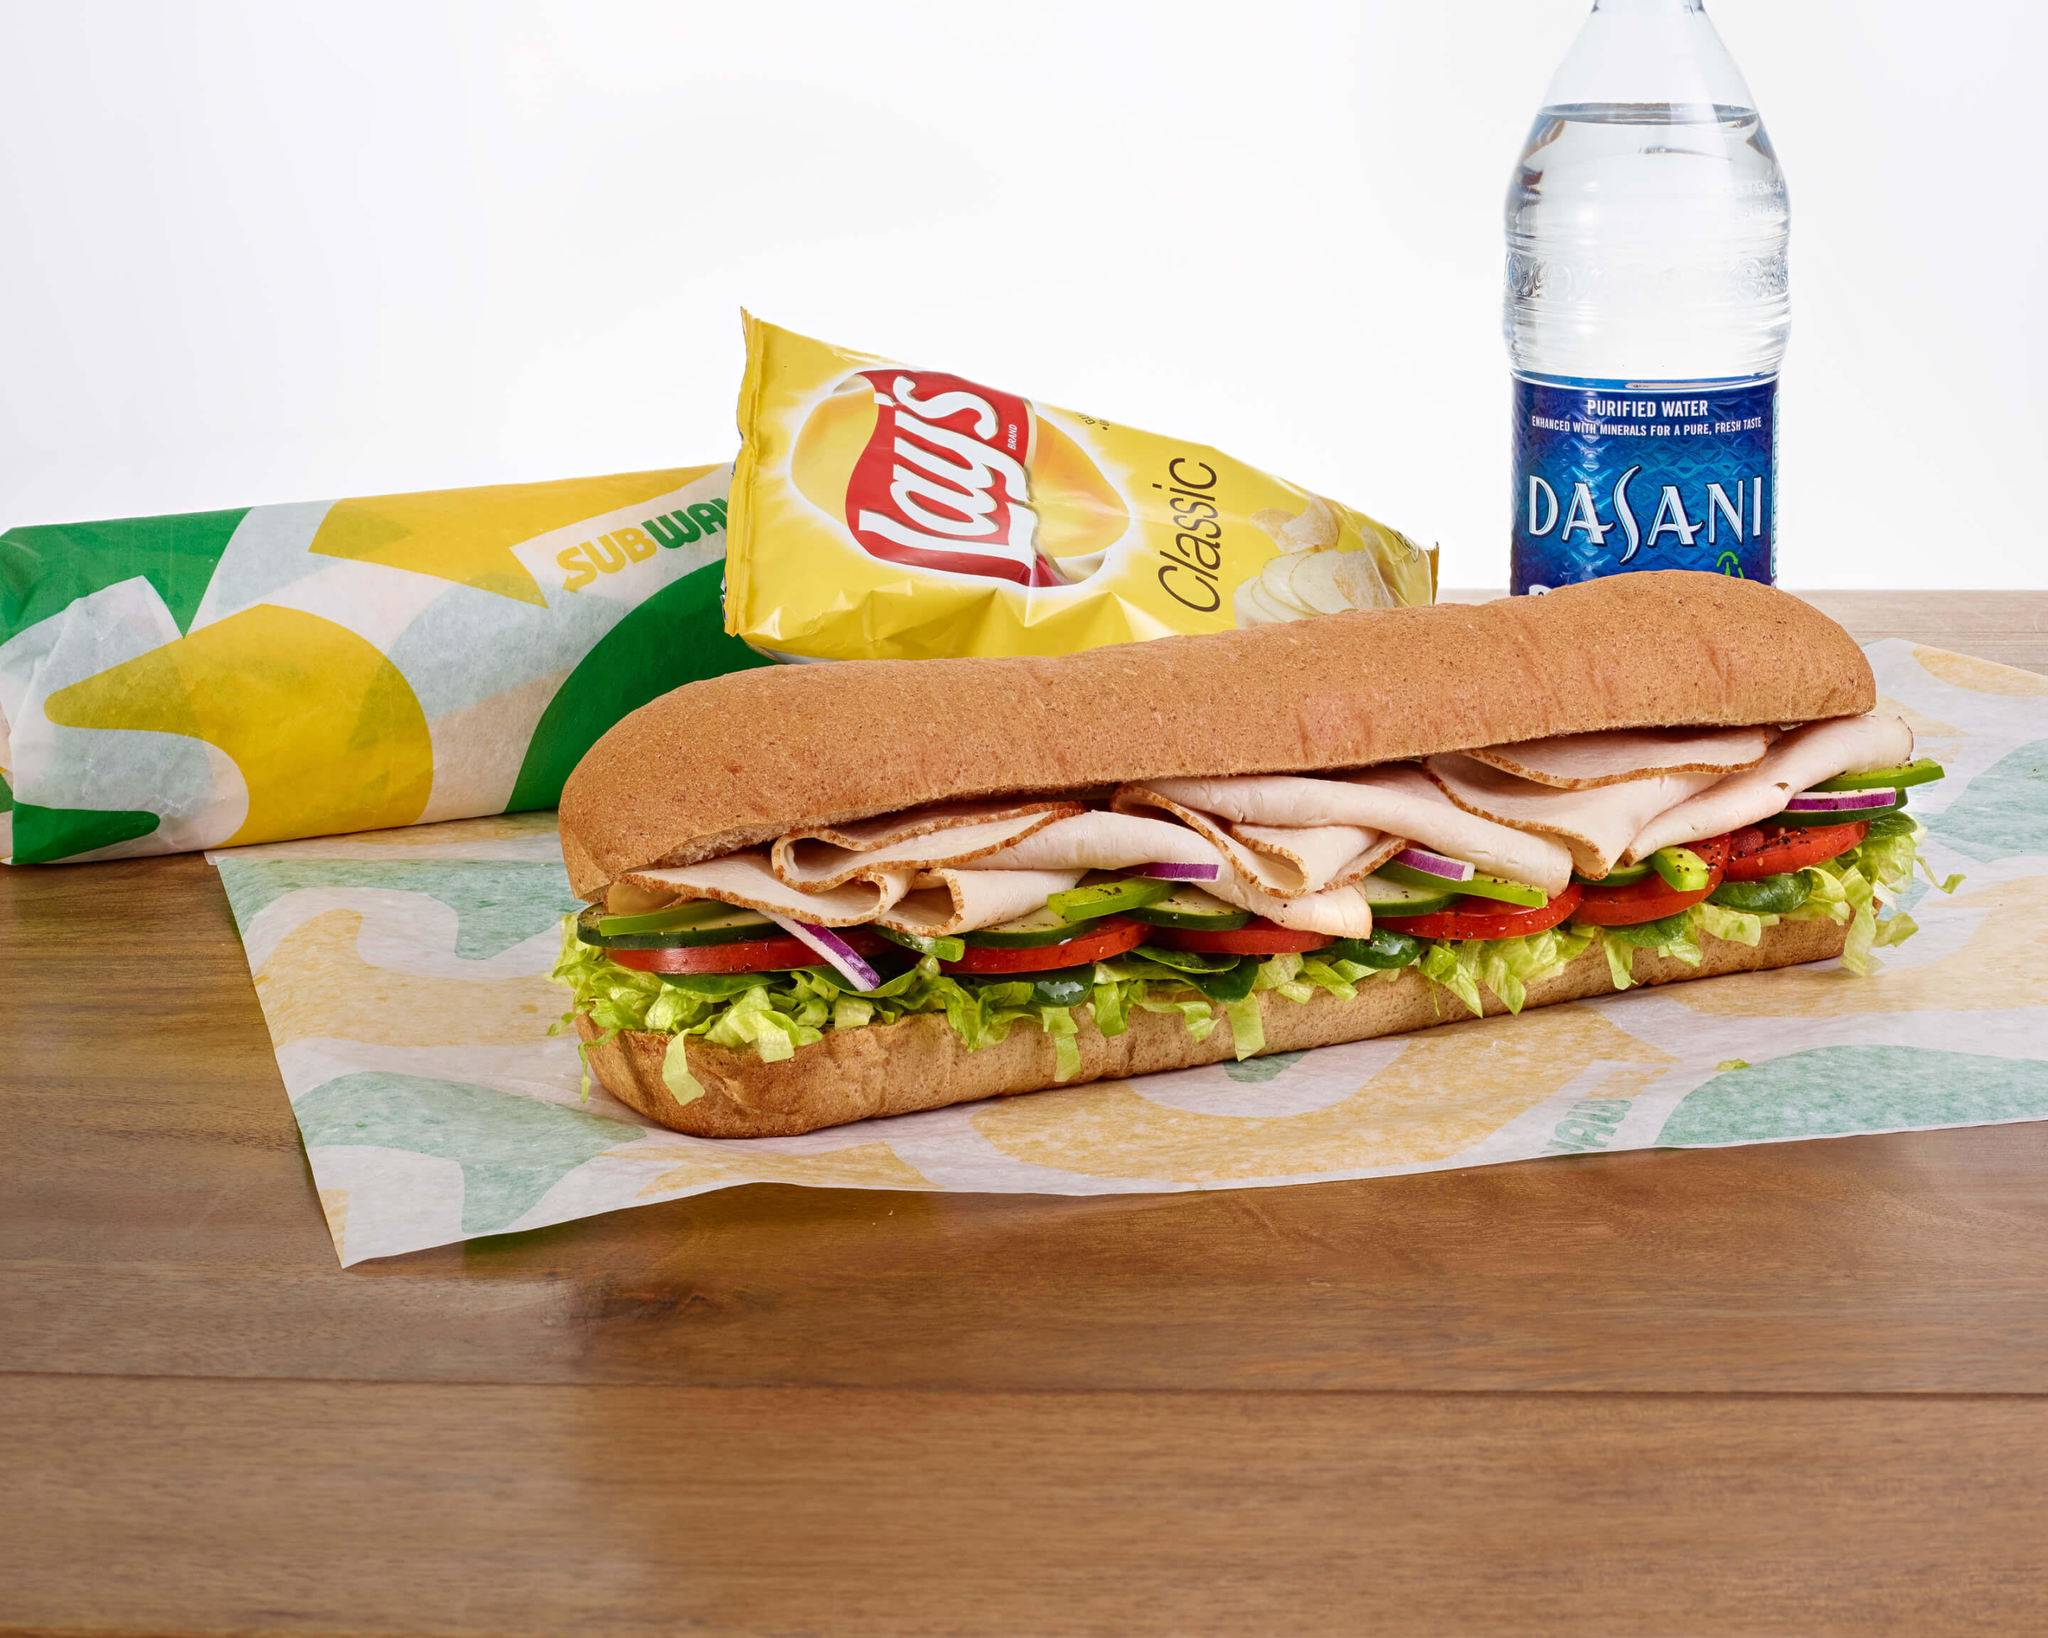 Order Subway 4511 Liberty Rd S Delivery Online Willamette Valley Menu Prices Uber Eats